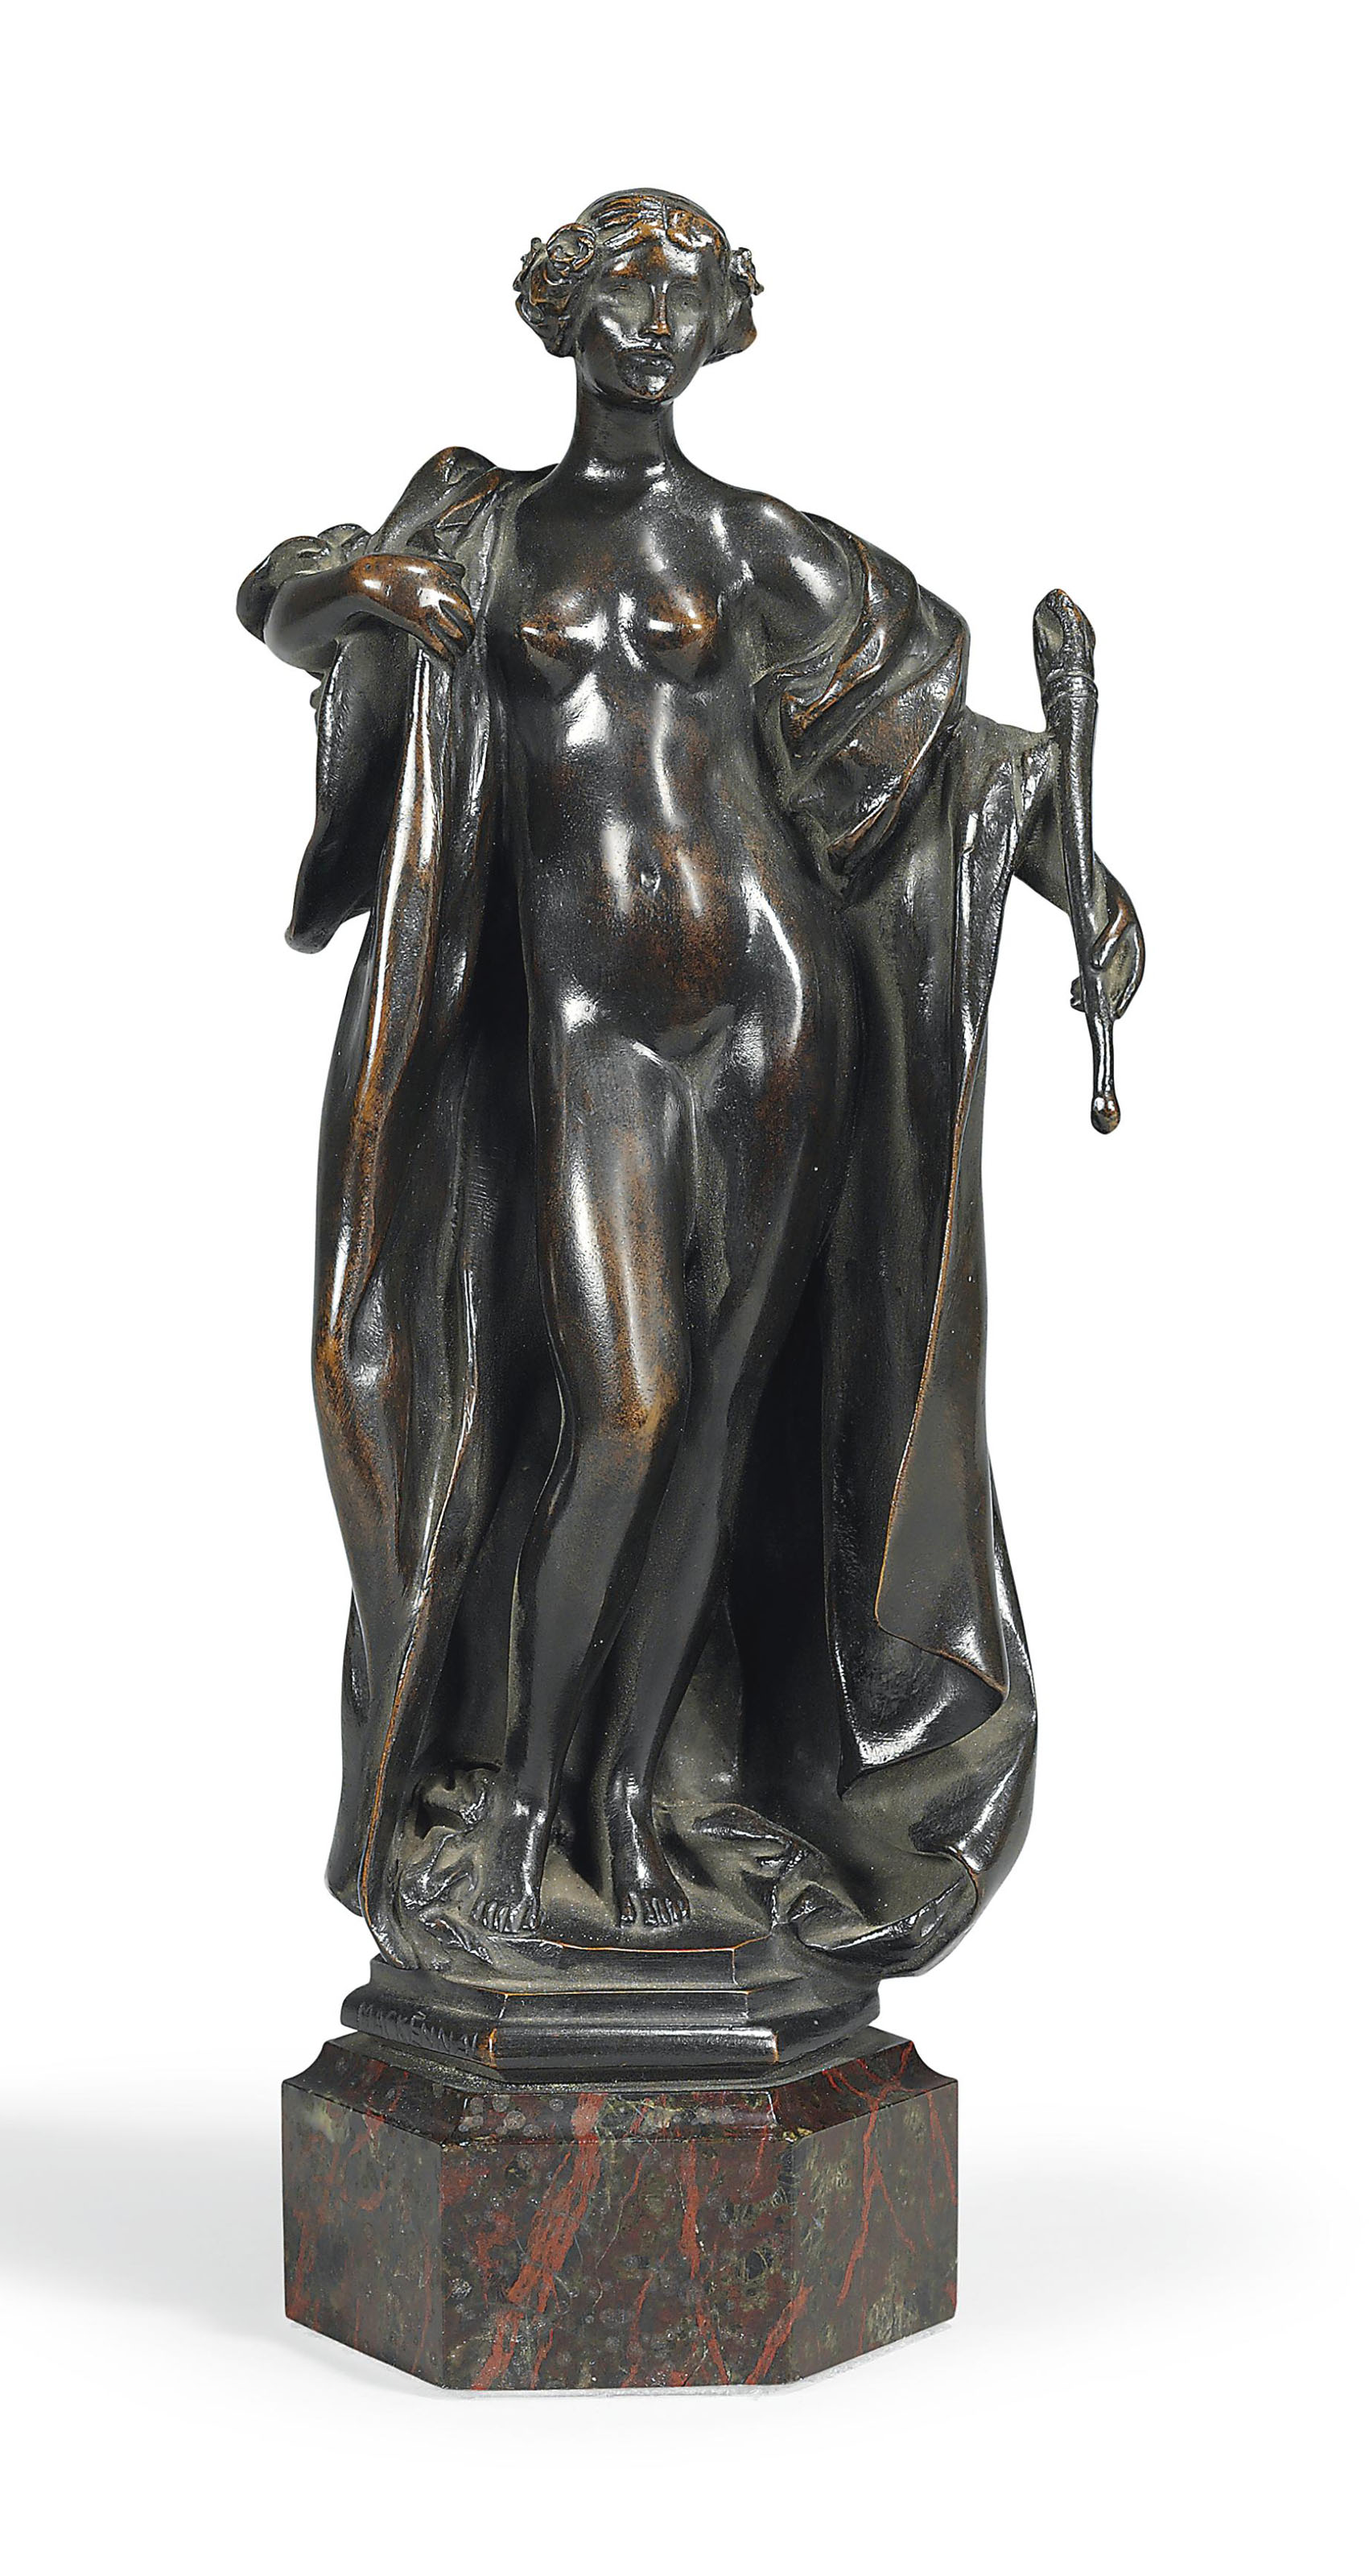 A BRONZE FIGURE OF A CLASSICAL WOMAN